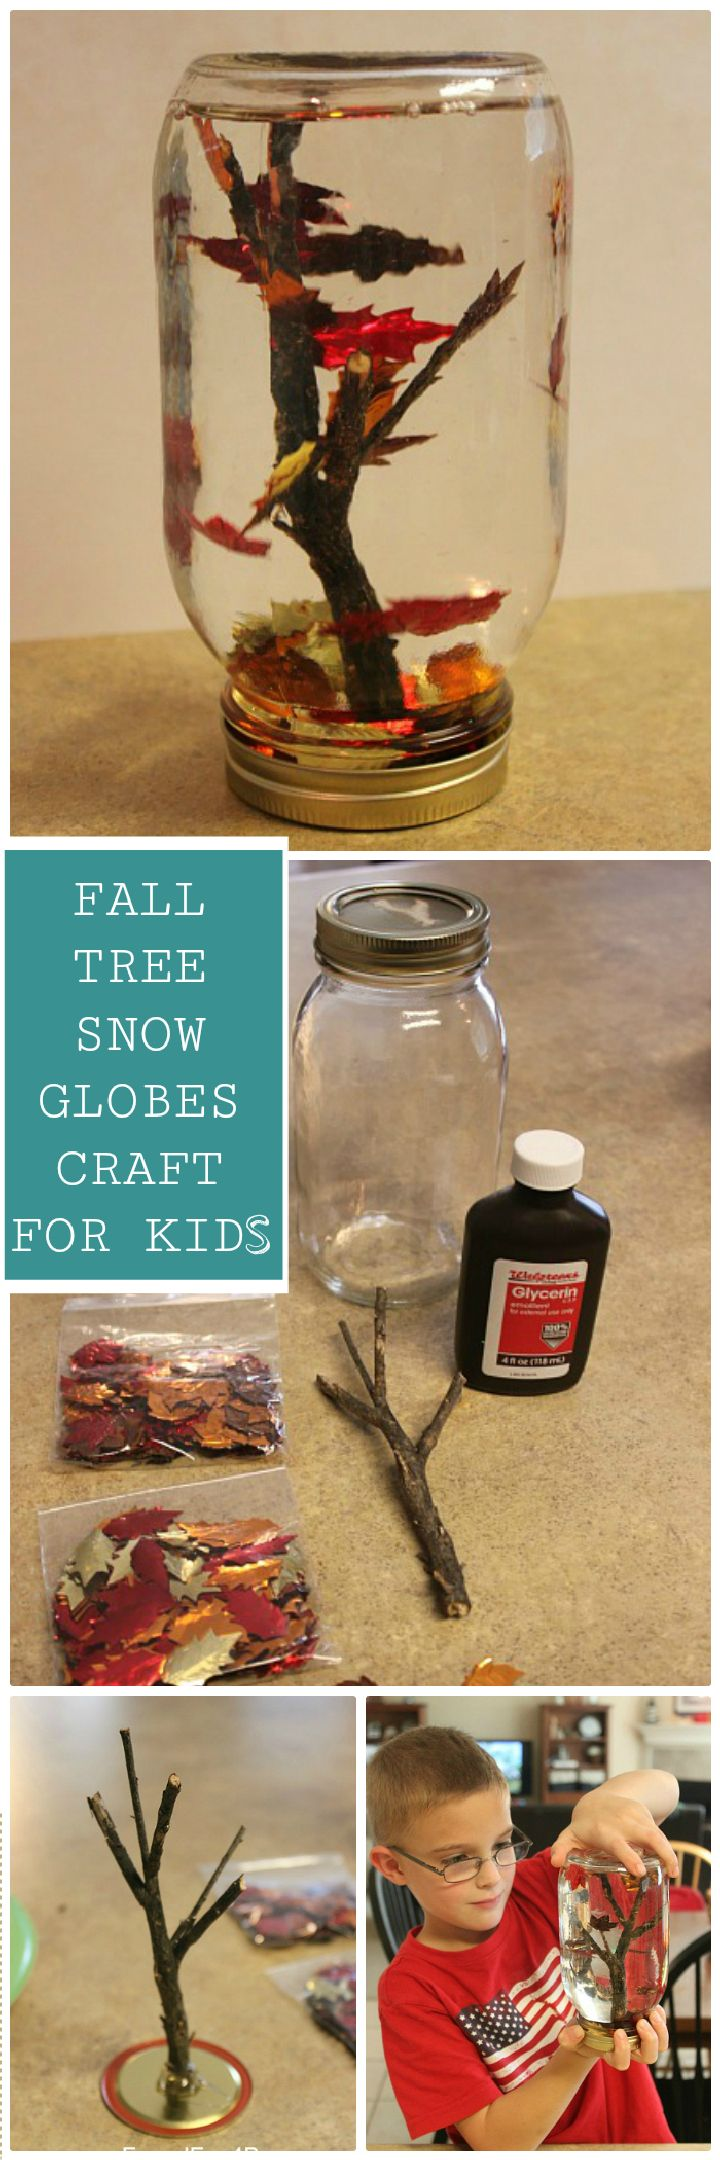 mason jar craft ideas | mason jar craft ideas diy | mason jar craft ideas christmas | mason jar craft ideas decor | mason jar craft ideas for kids